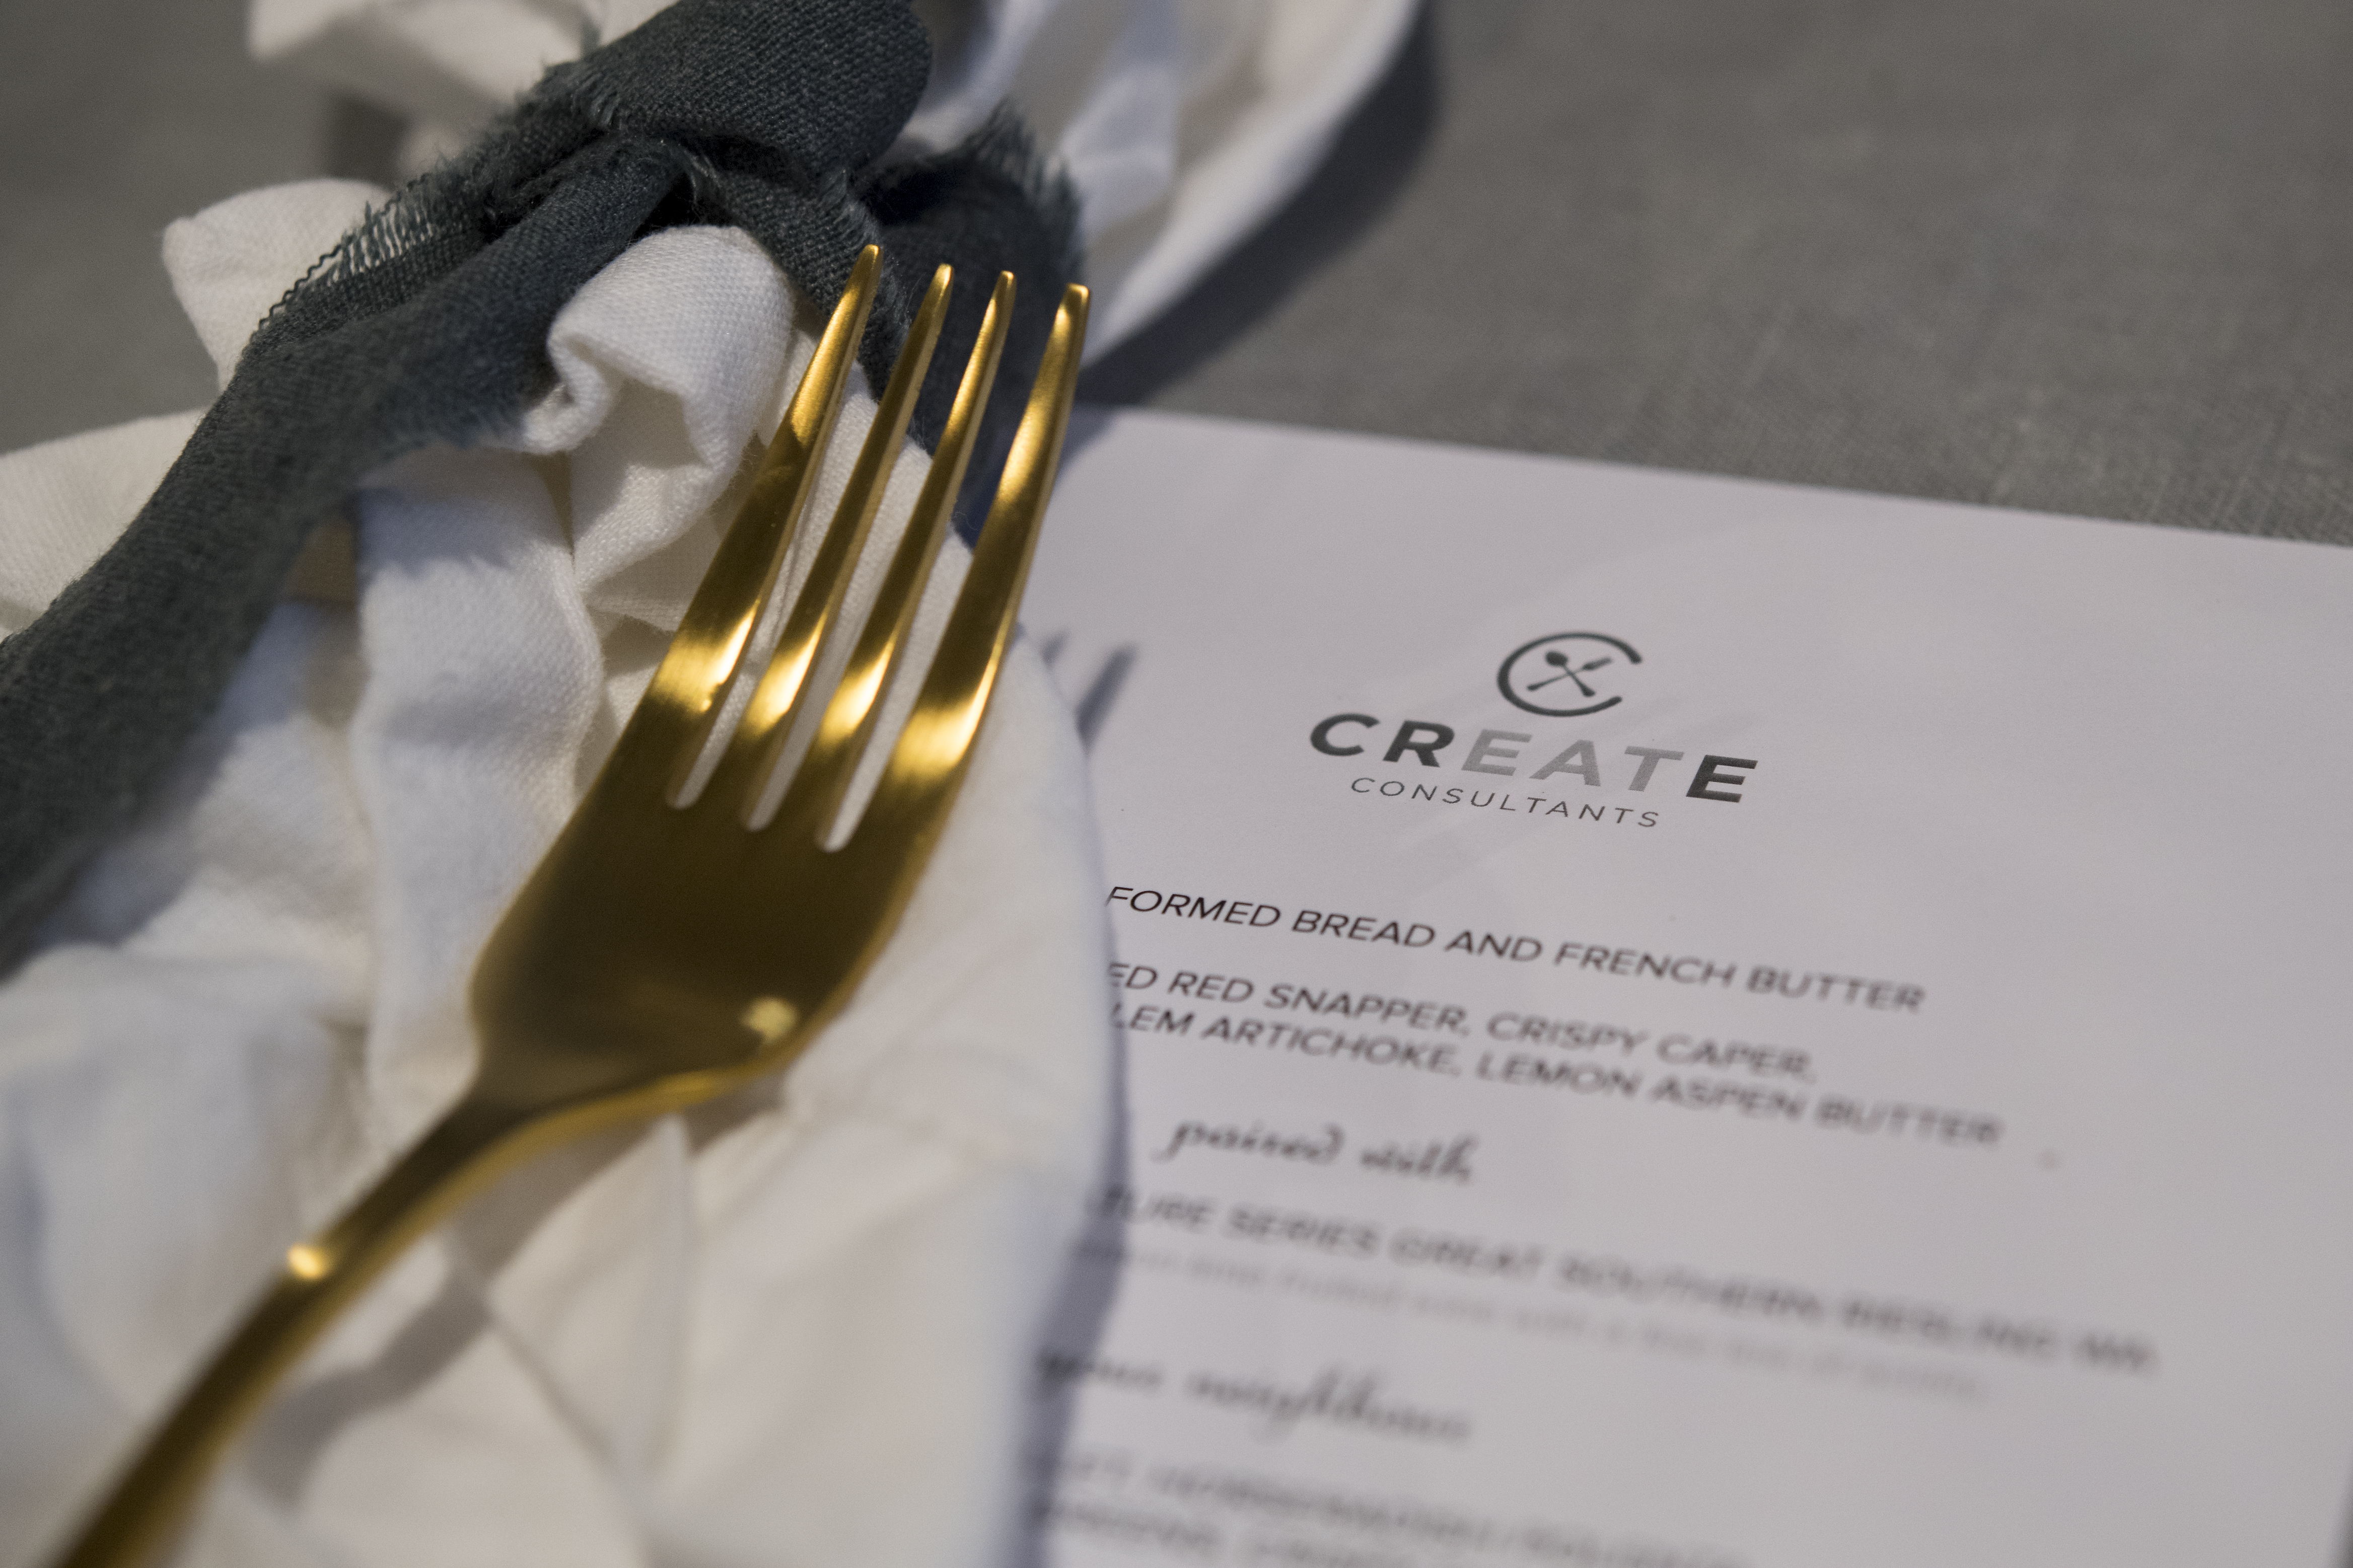 A contemporary cuisine, clean and simple flavours by local and regional food producers